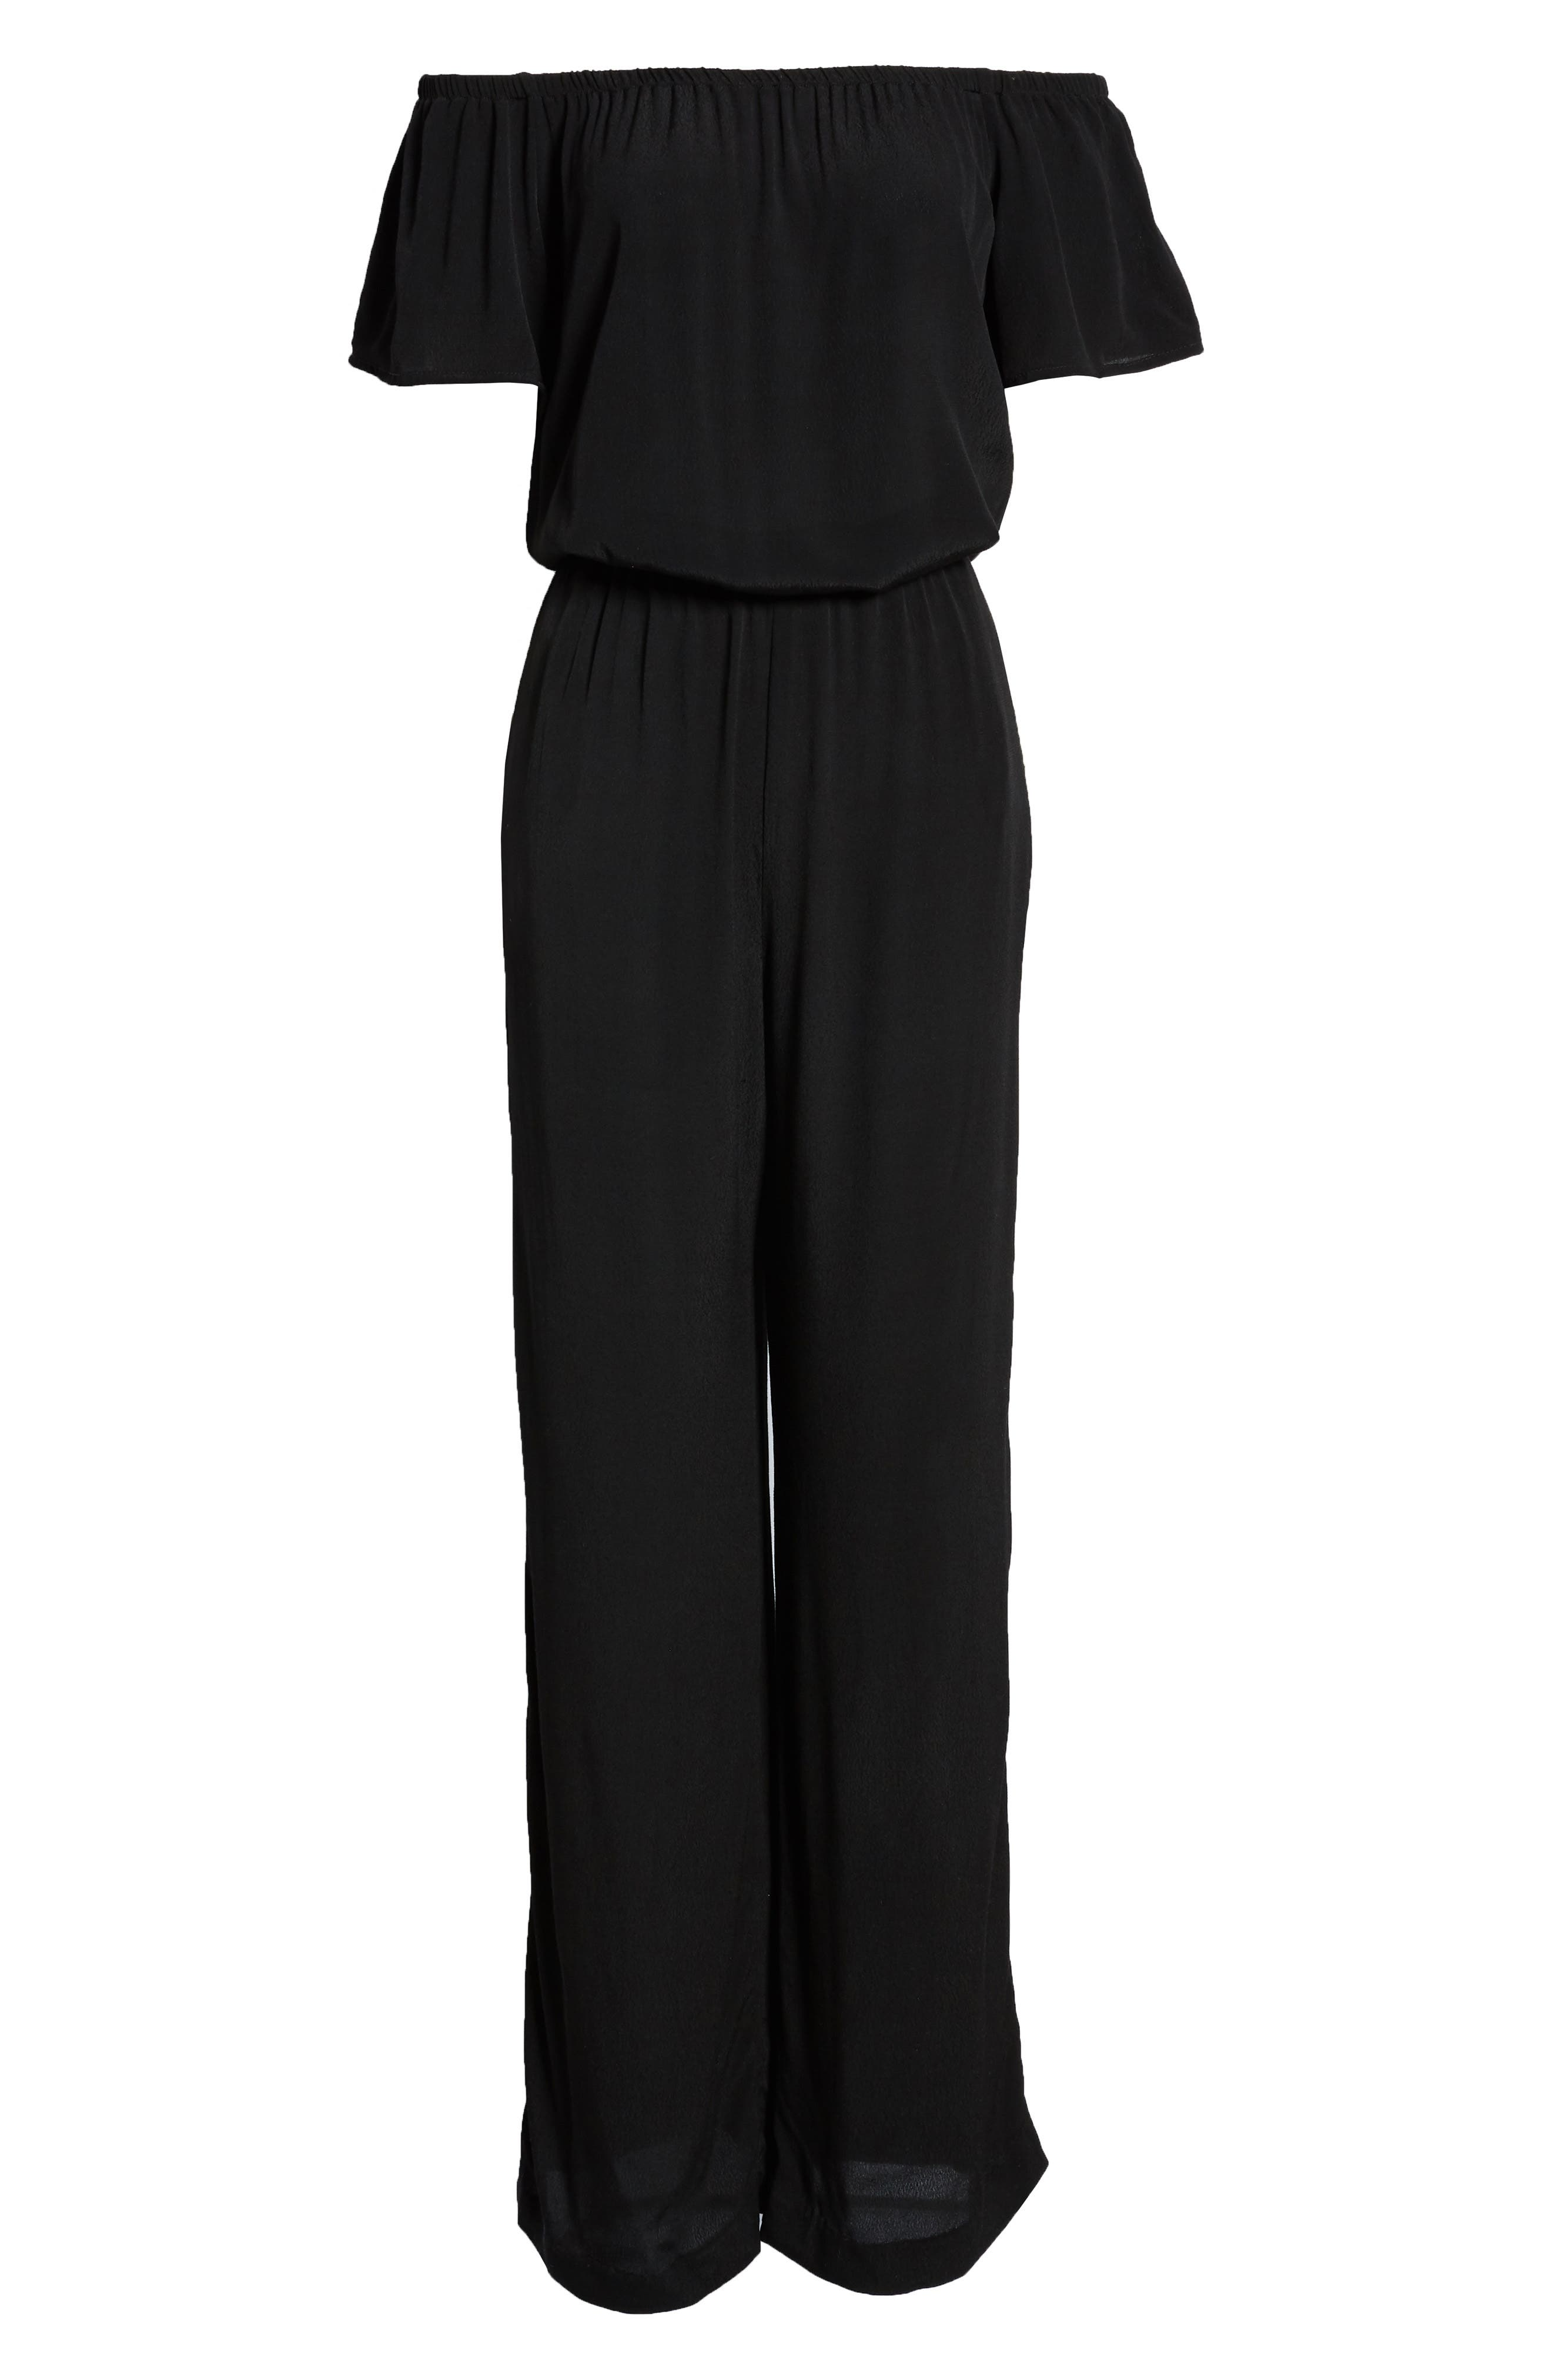 CHARLES HENRY, Off the Shoulder Wide Leg Jumpsuit, Alternate thumbnail 2, color, BLACK